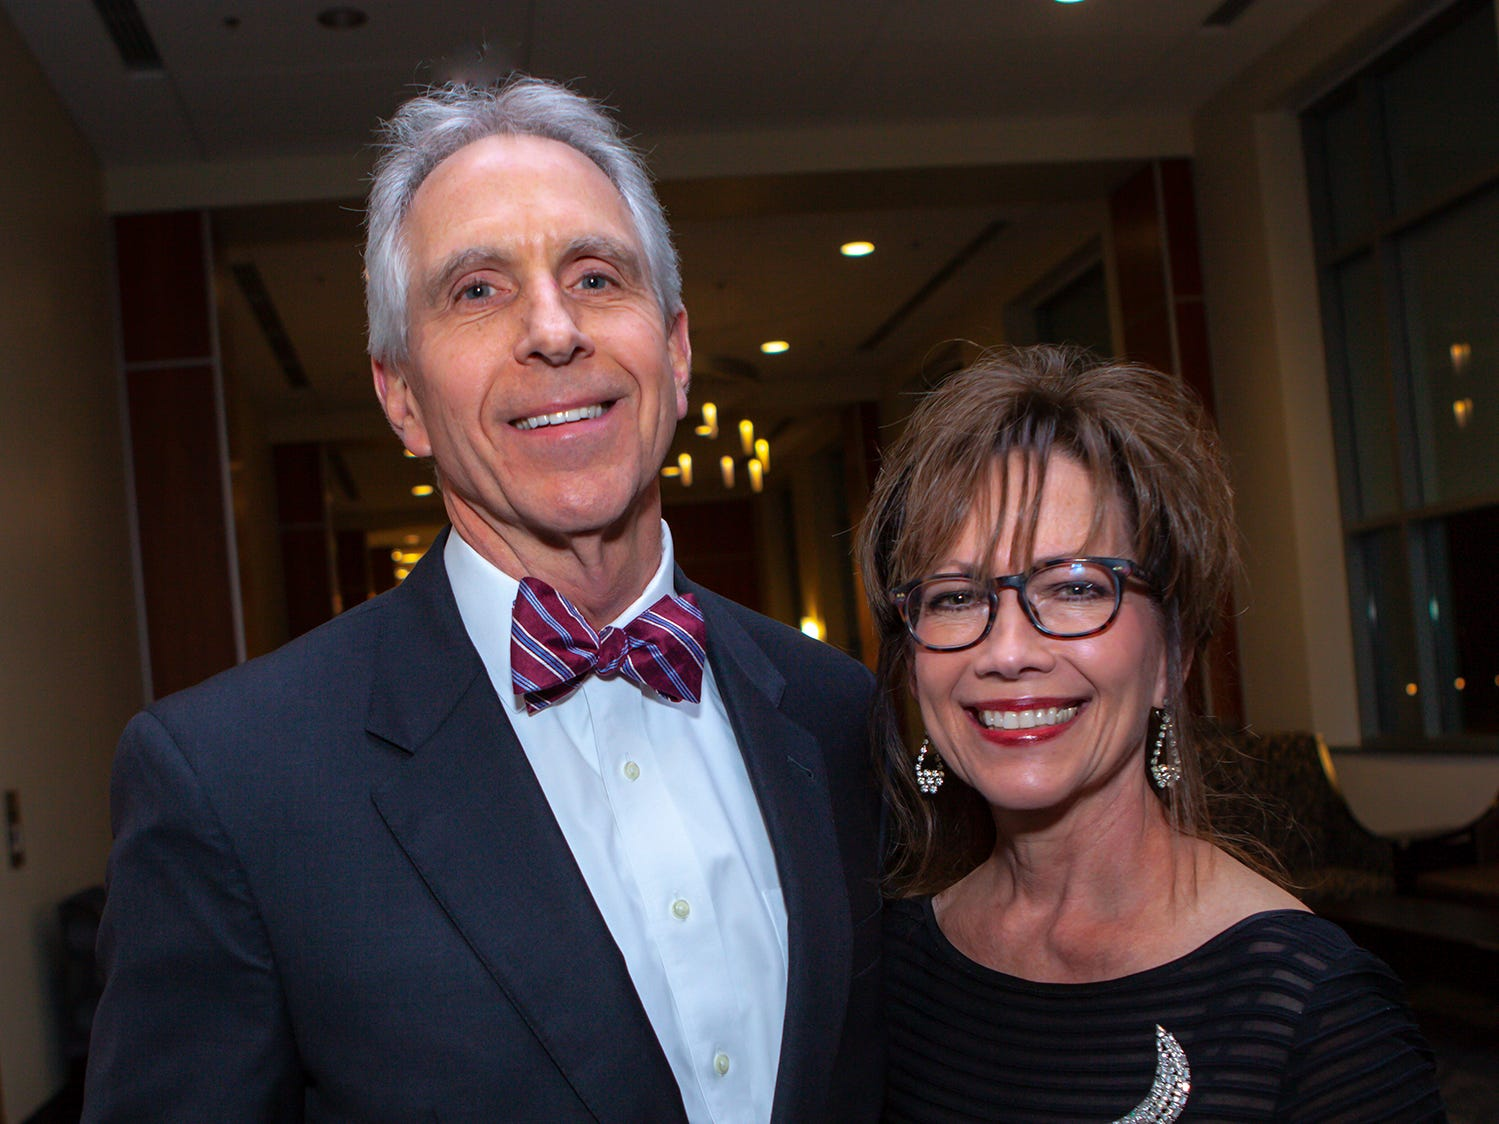 Ben and Margie Weatherford at the 2019 Excellence in Education Gala, hosted by the City Schools Foundation on Friday, Jan. 25, 2019 at Stones River Country Club in Murfreesboro